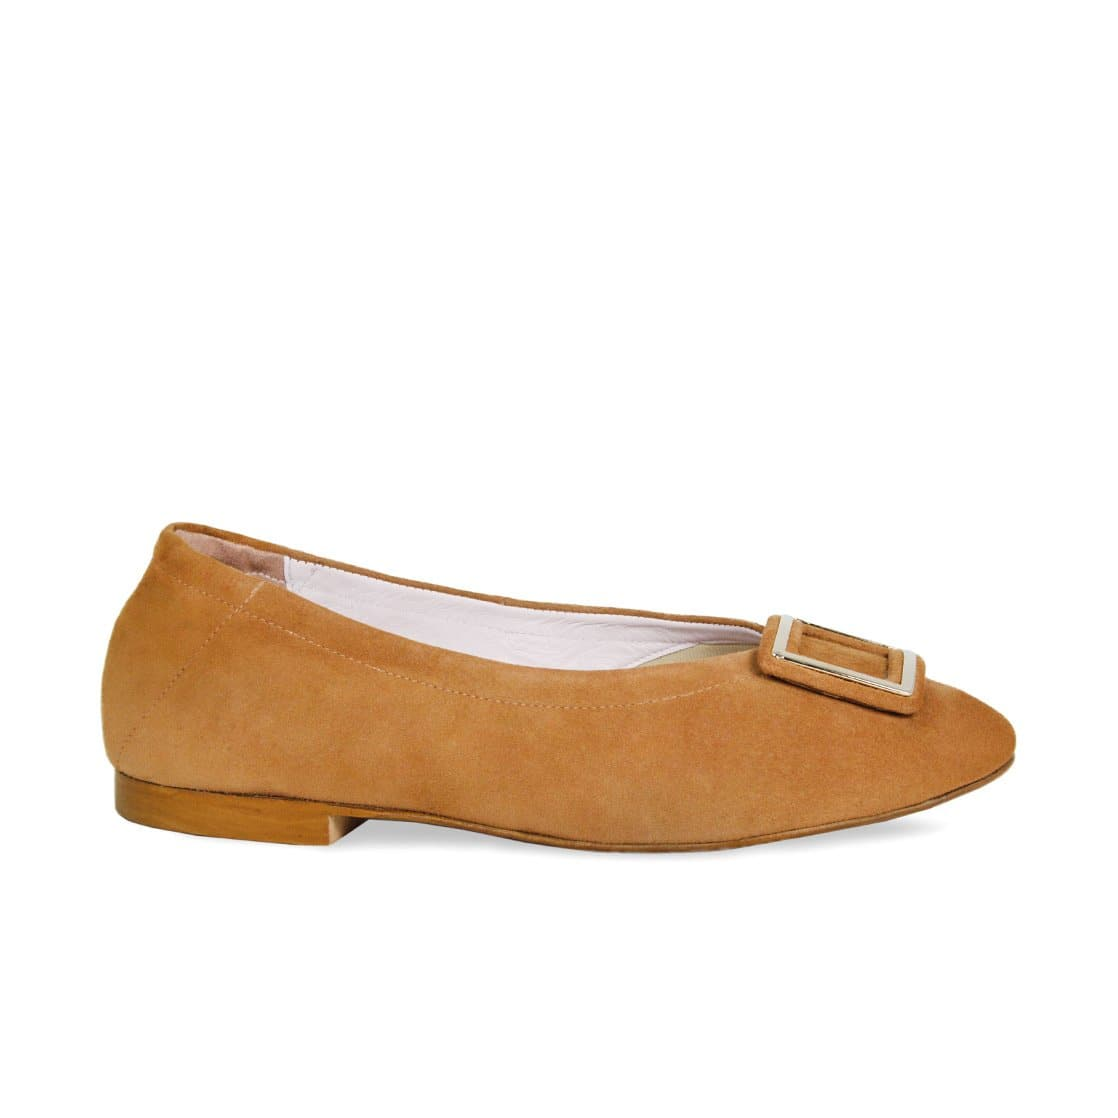 Tan Suede Ballet Flat with Buckle